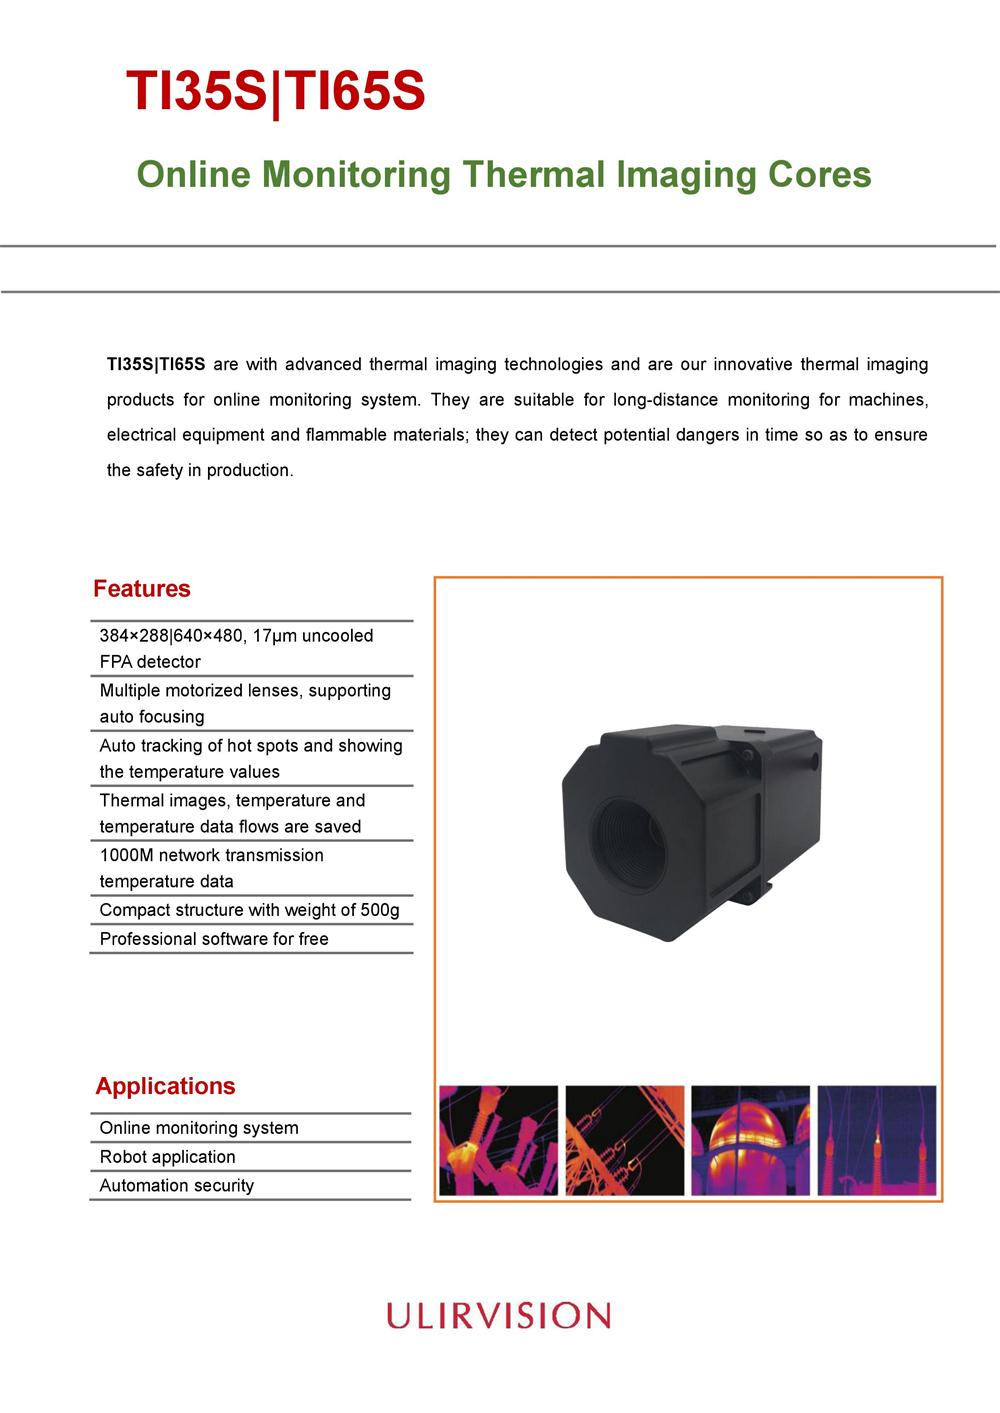 Online Monitoring Thermal Imaging Core TI35S